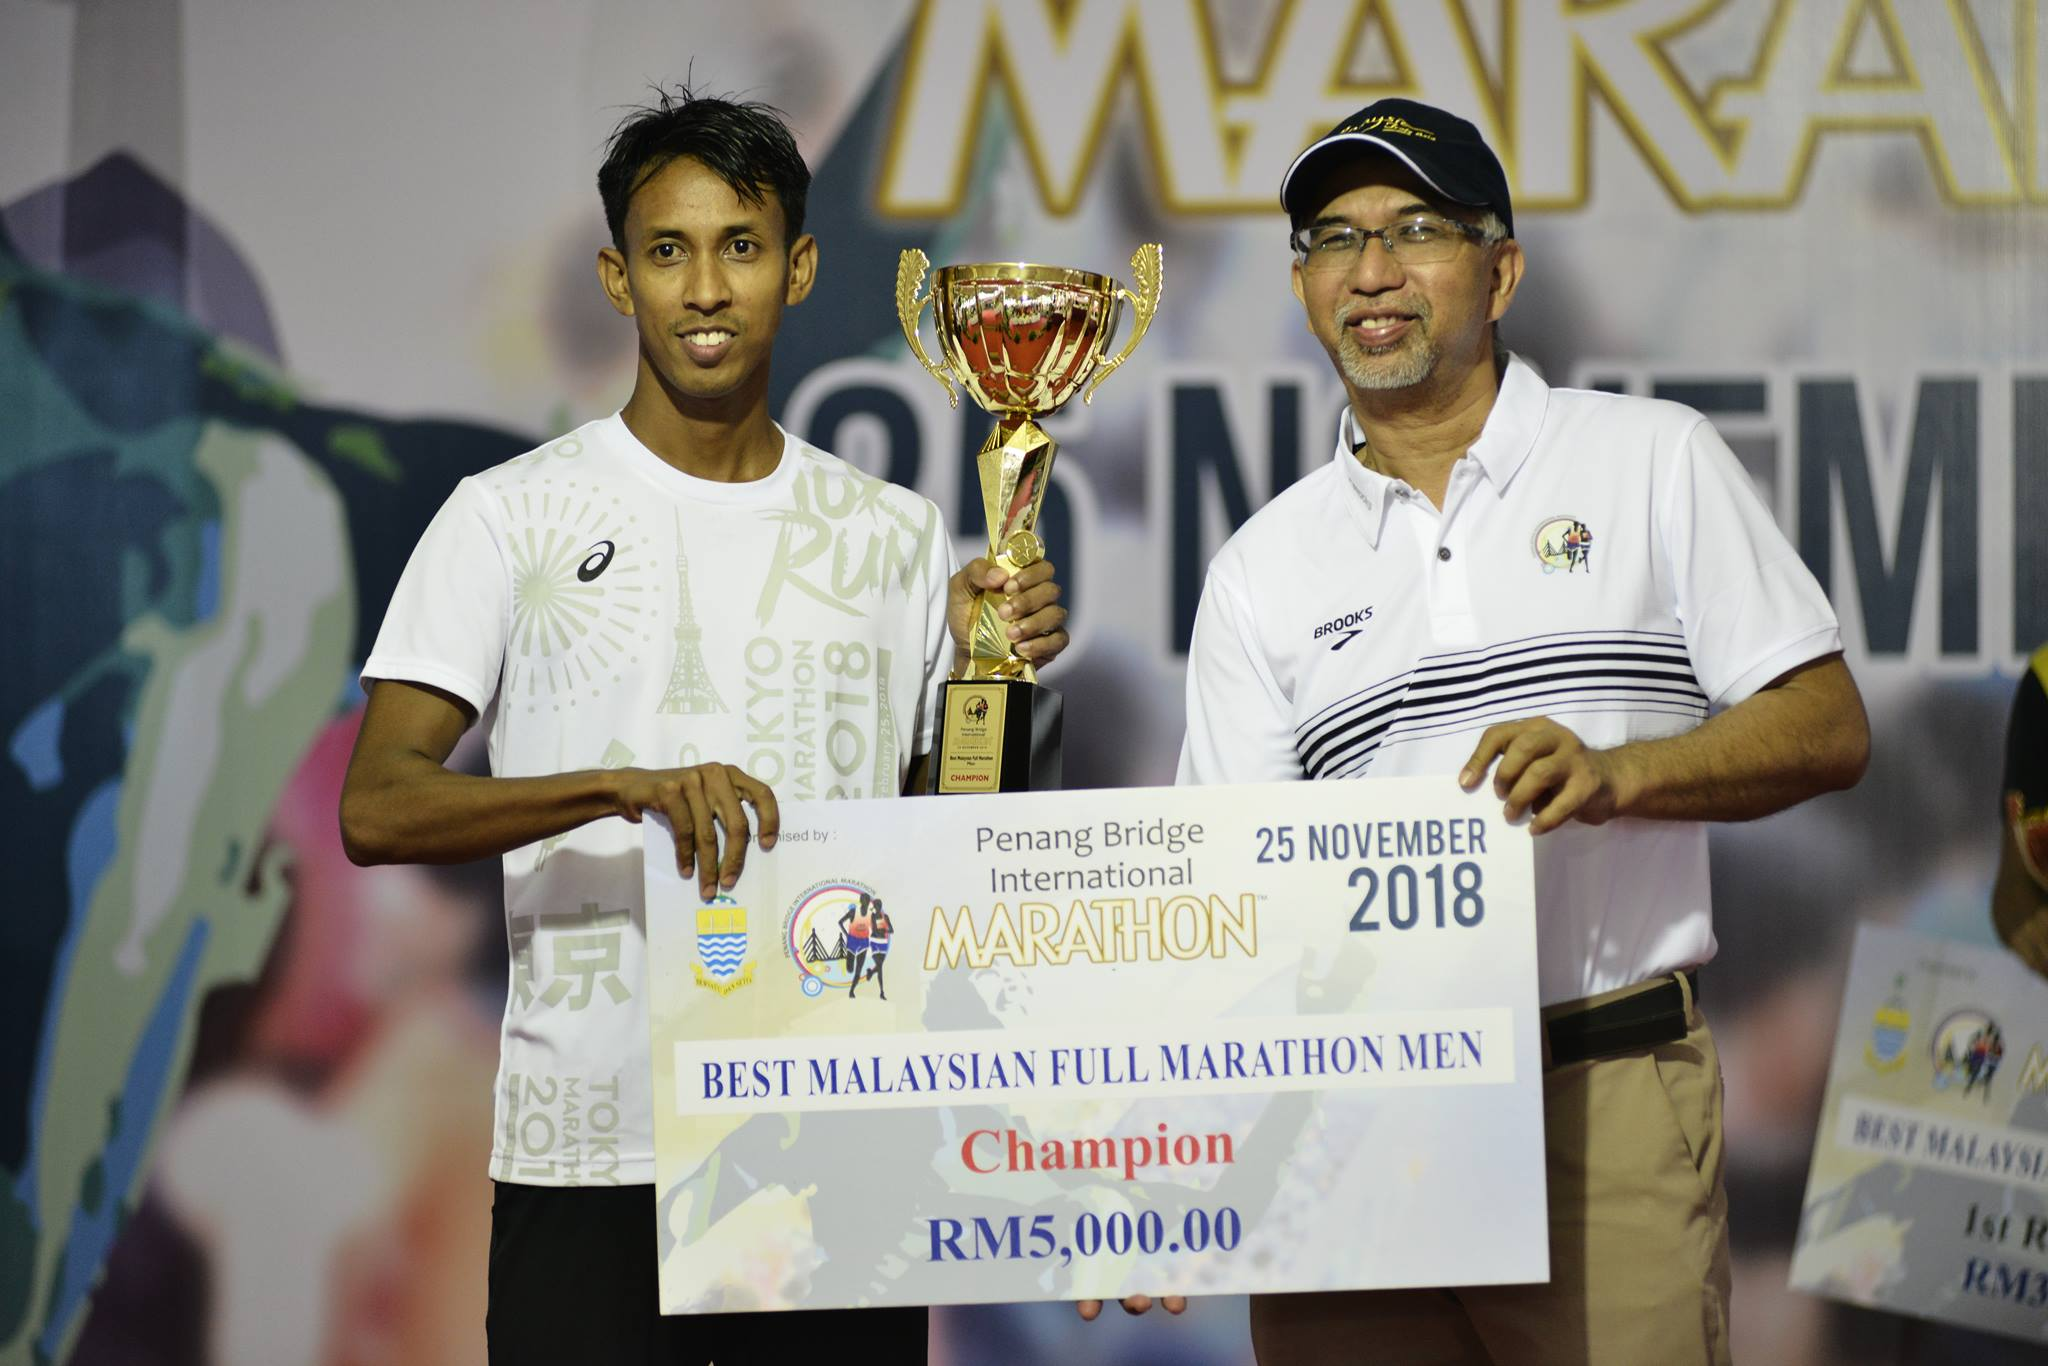 Nik Fakaruddin has won the Full Marathon Men's Open, Malaysian category, four years in a row.